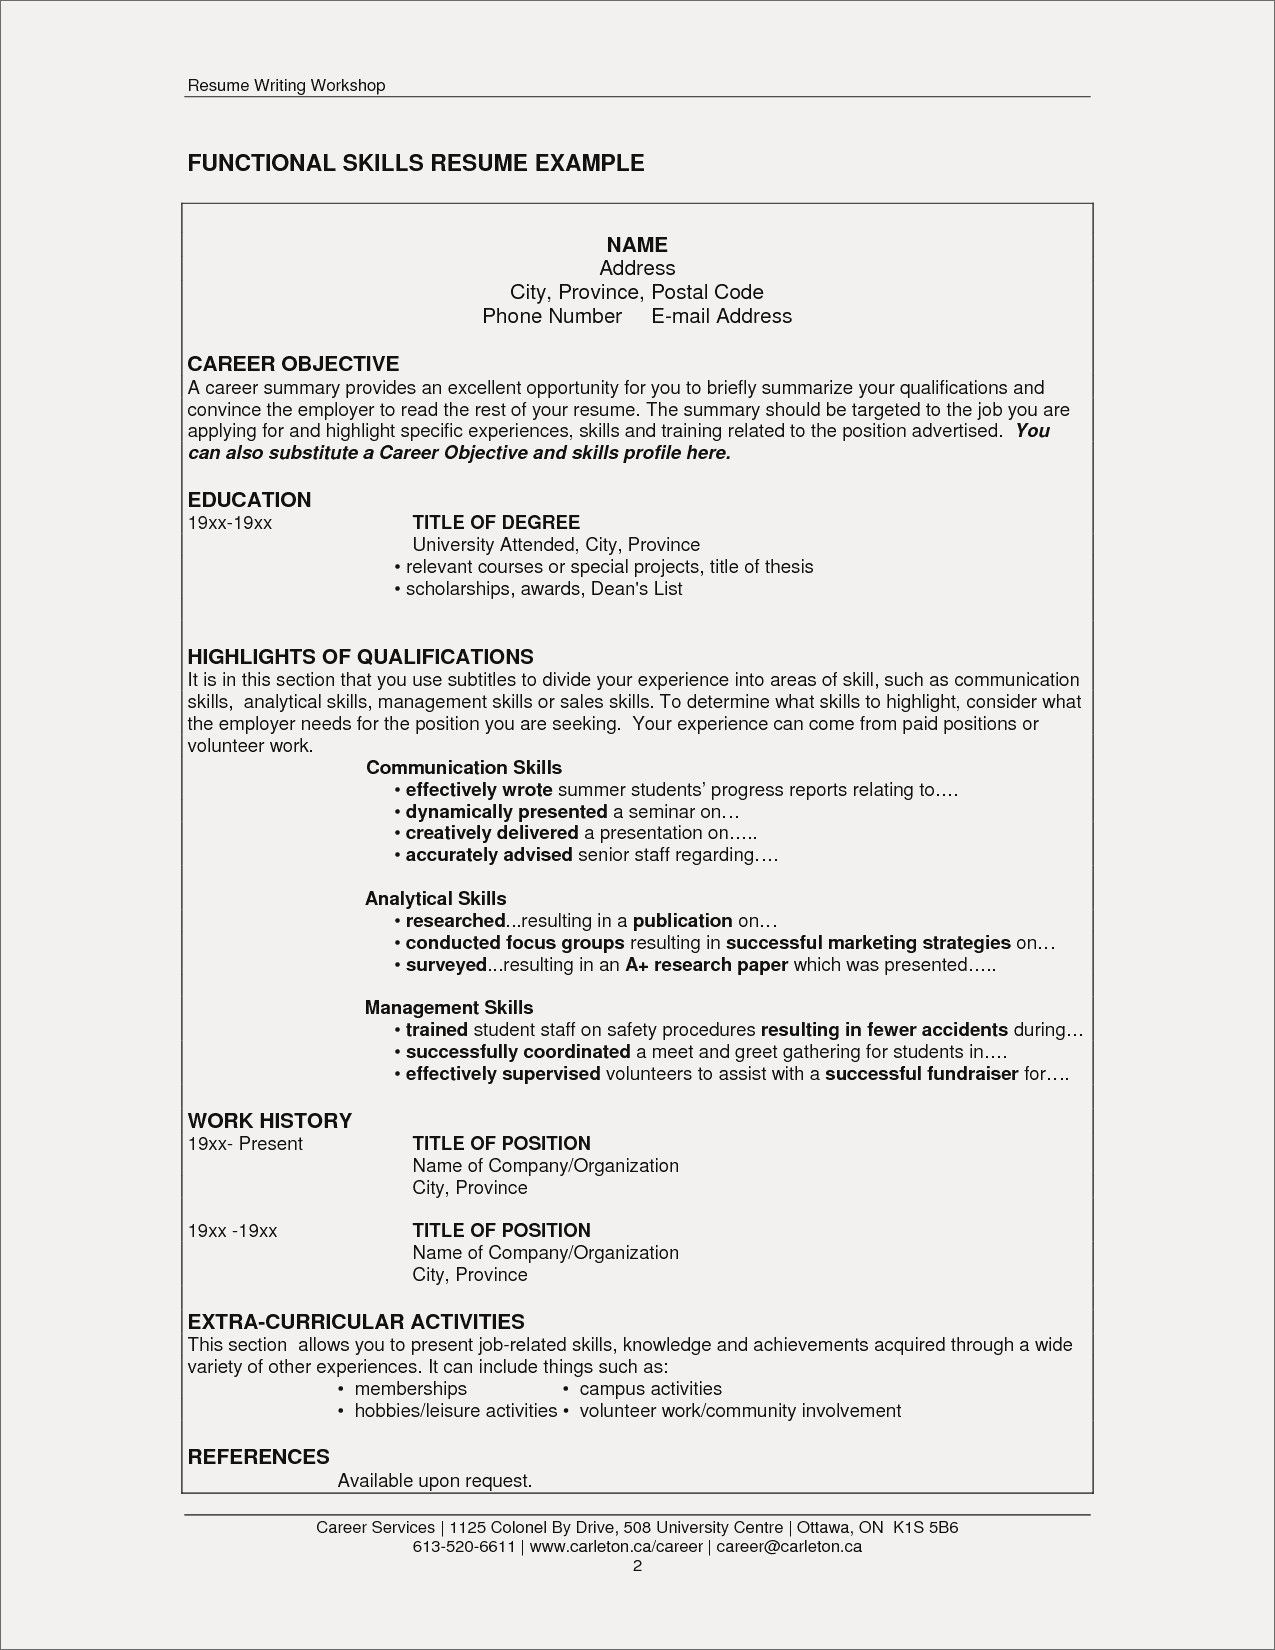 70 Awesome Image Of Sample Resume for Engineering Manager